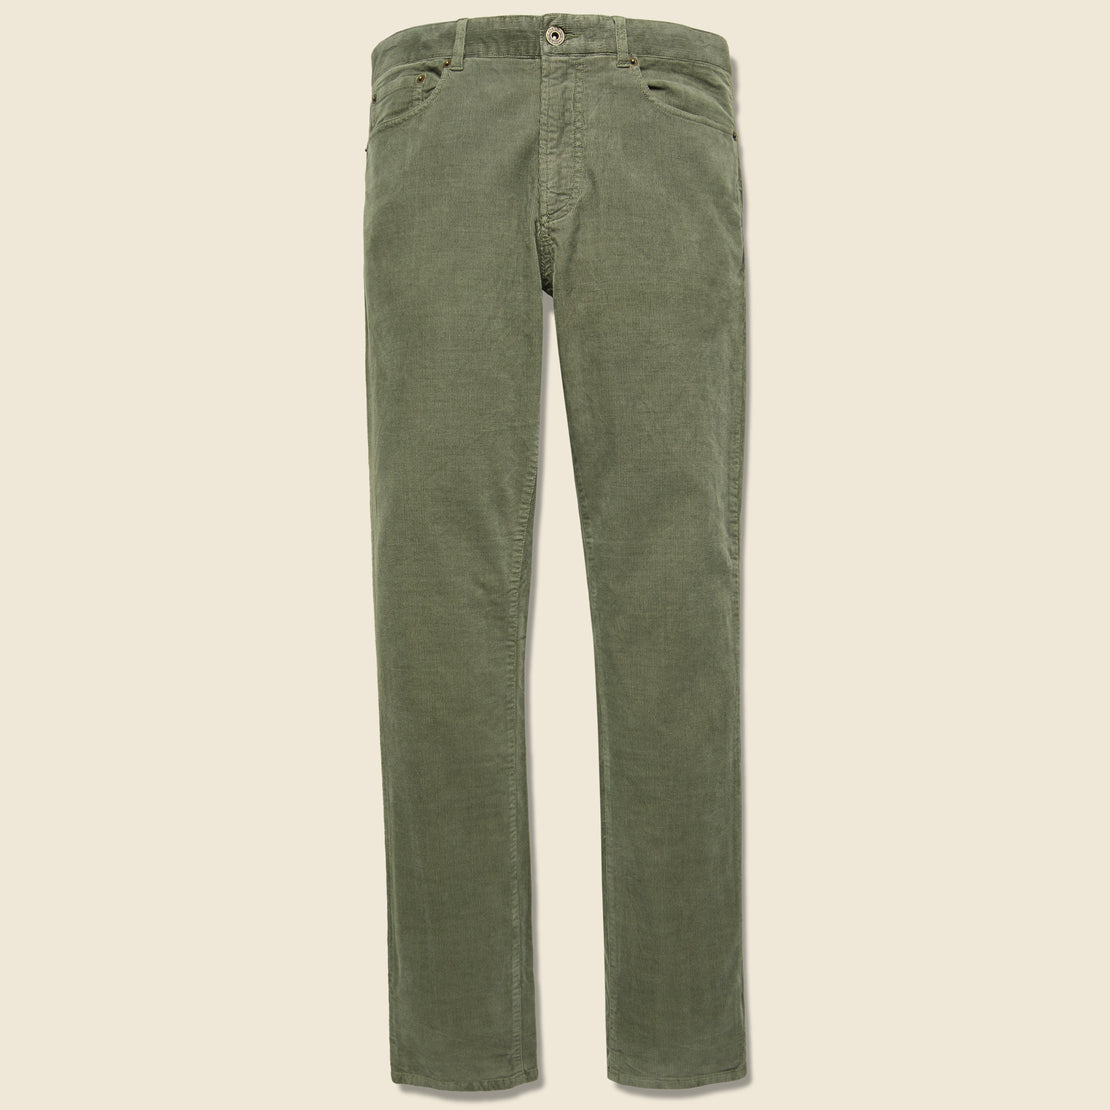 Faherty Stretch Corduroy Pant - Washed Olive